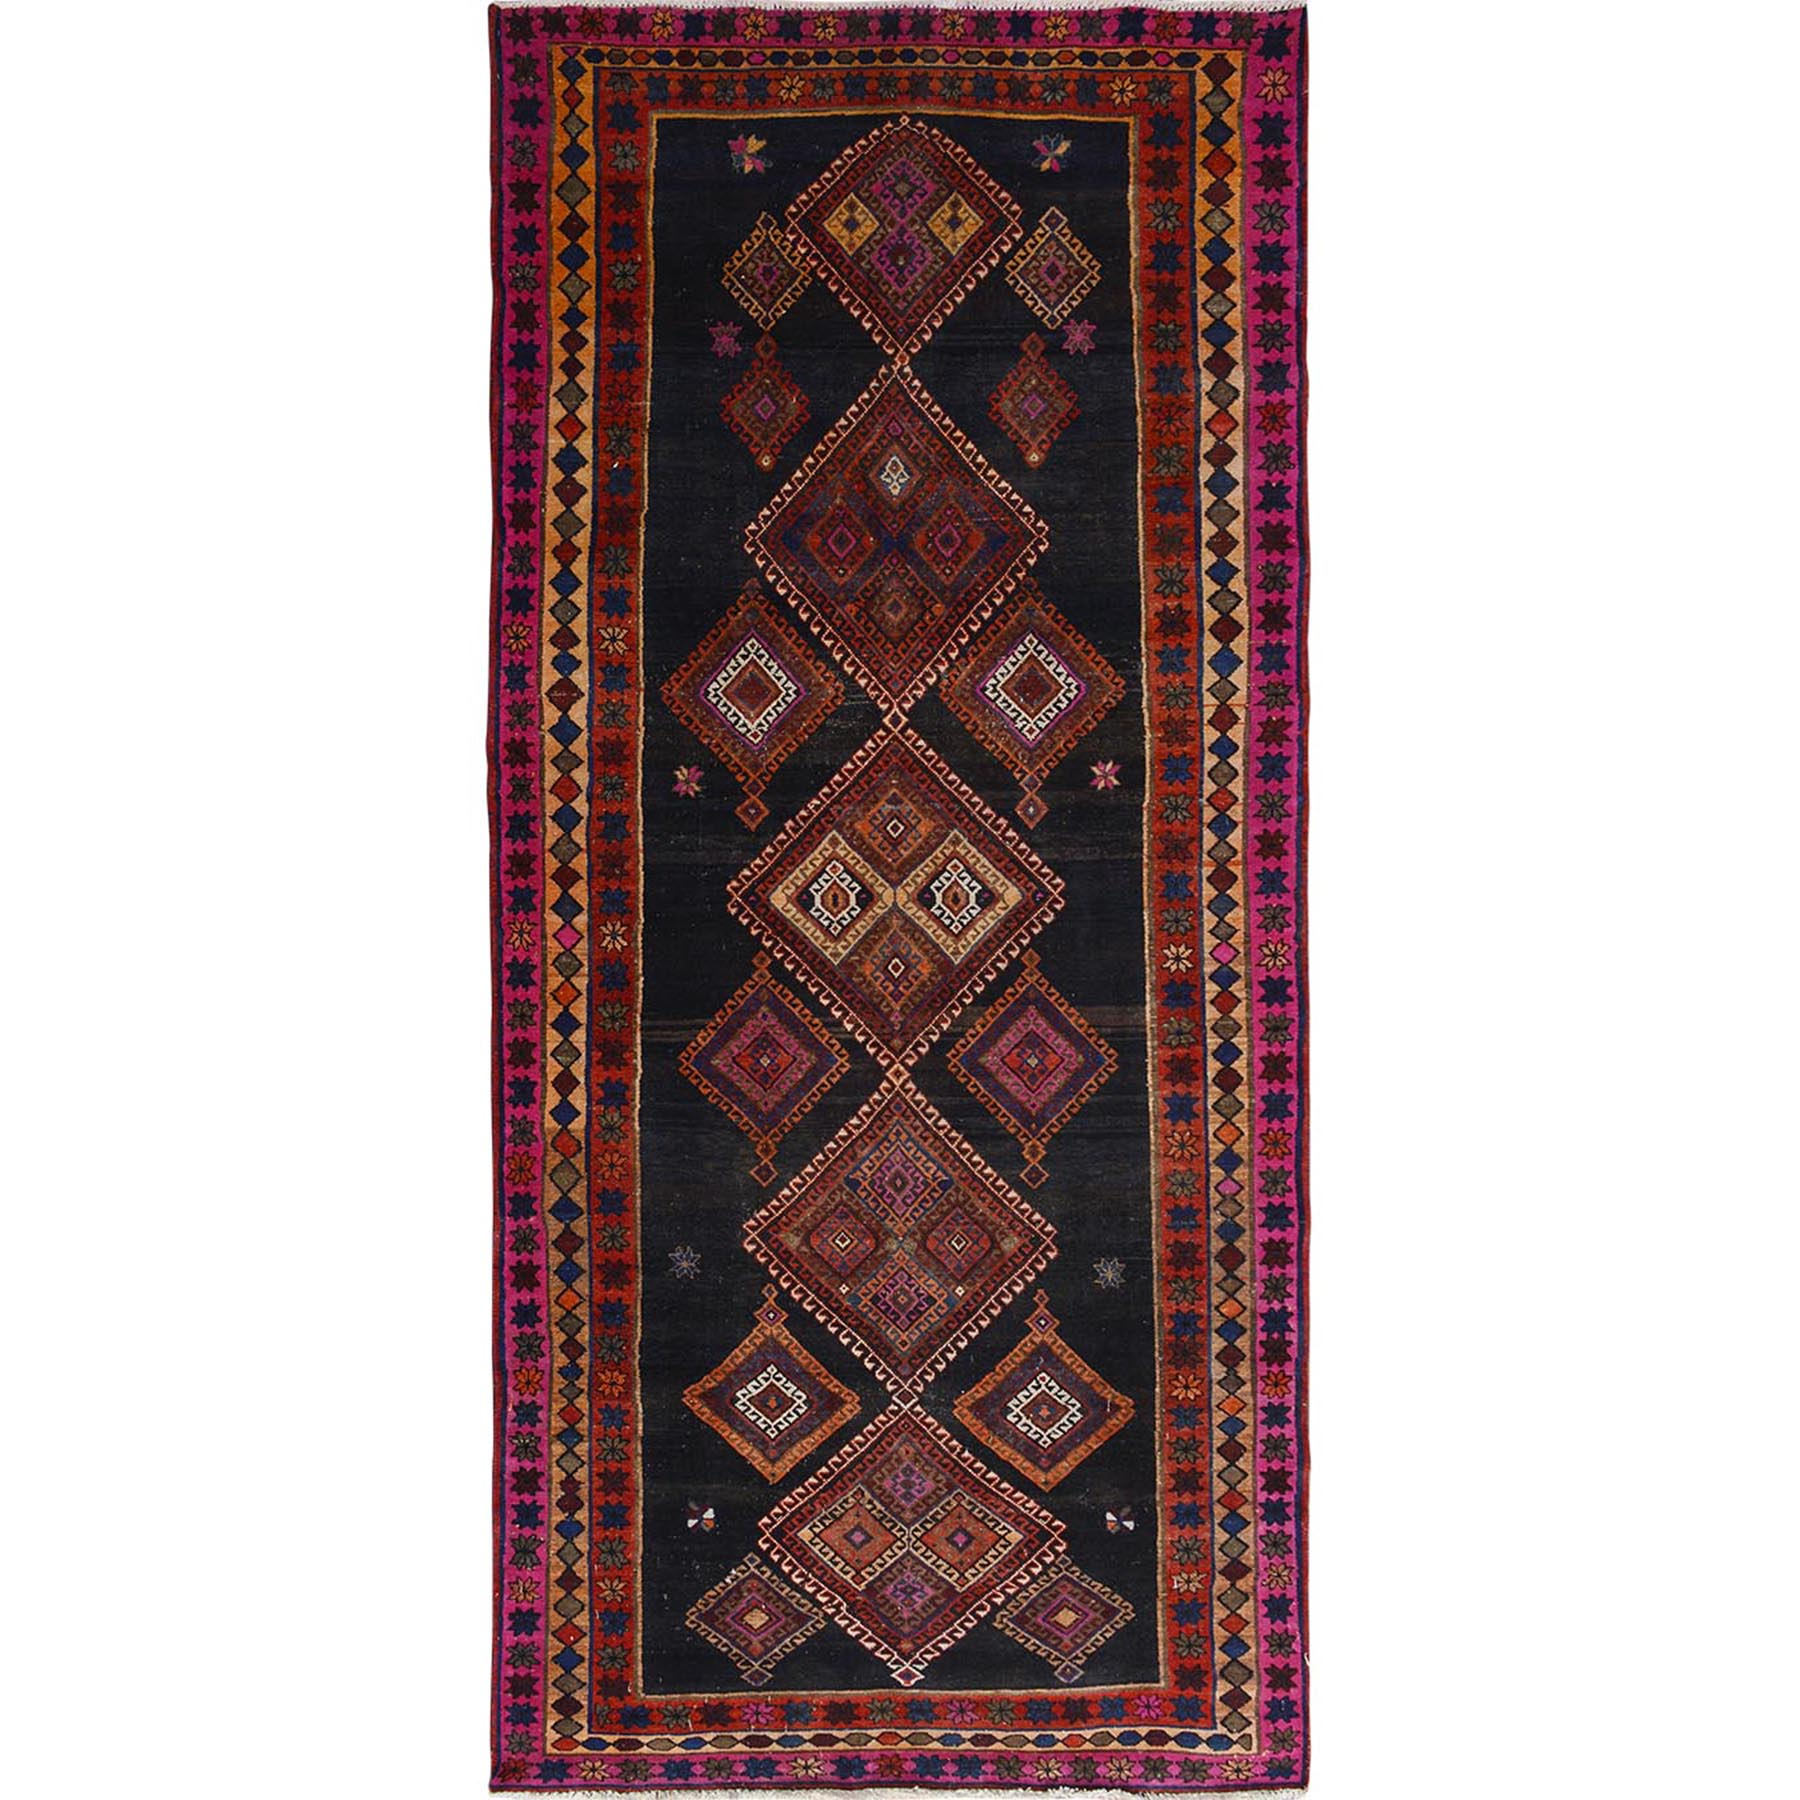 "5'x10'2"" Colorful Vintage And Worn Down Persian Bakhtiari Hand Woven Wide Runner Oriental Rug"